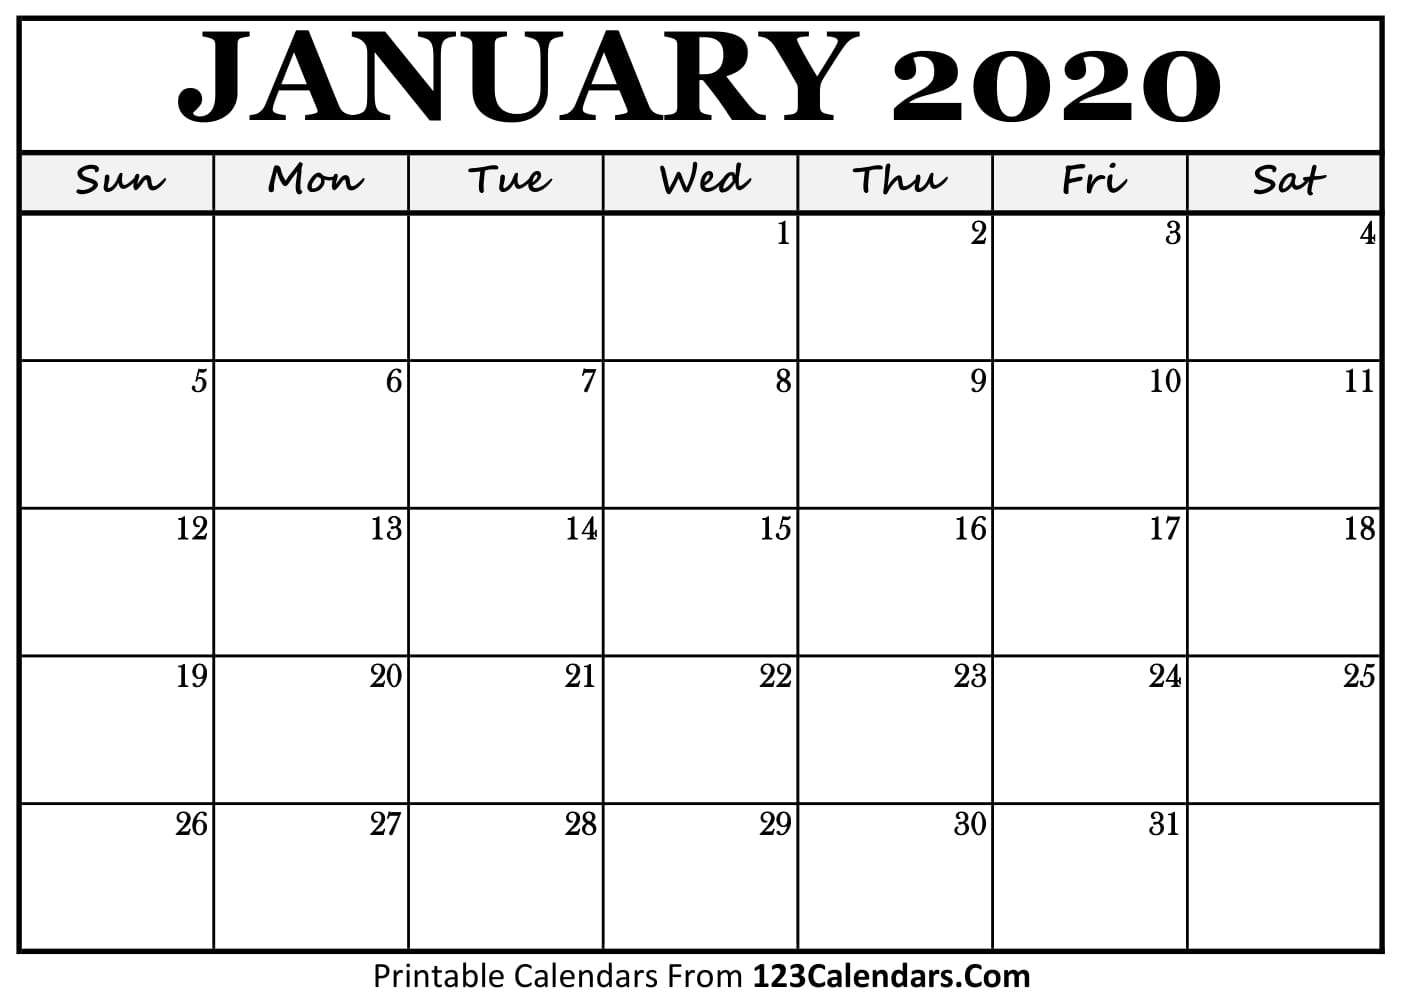 Free Printable Calendar | 123Calendars throughout Print Free Calendars Without Downloading